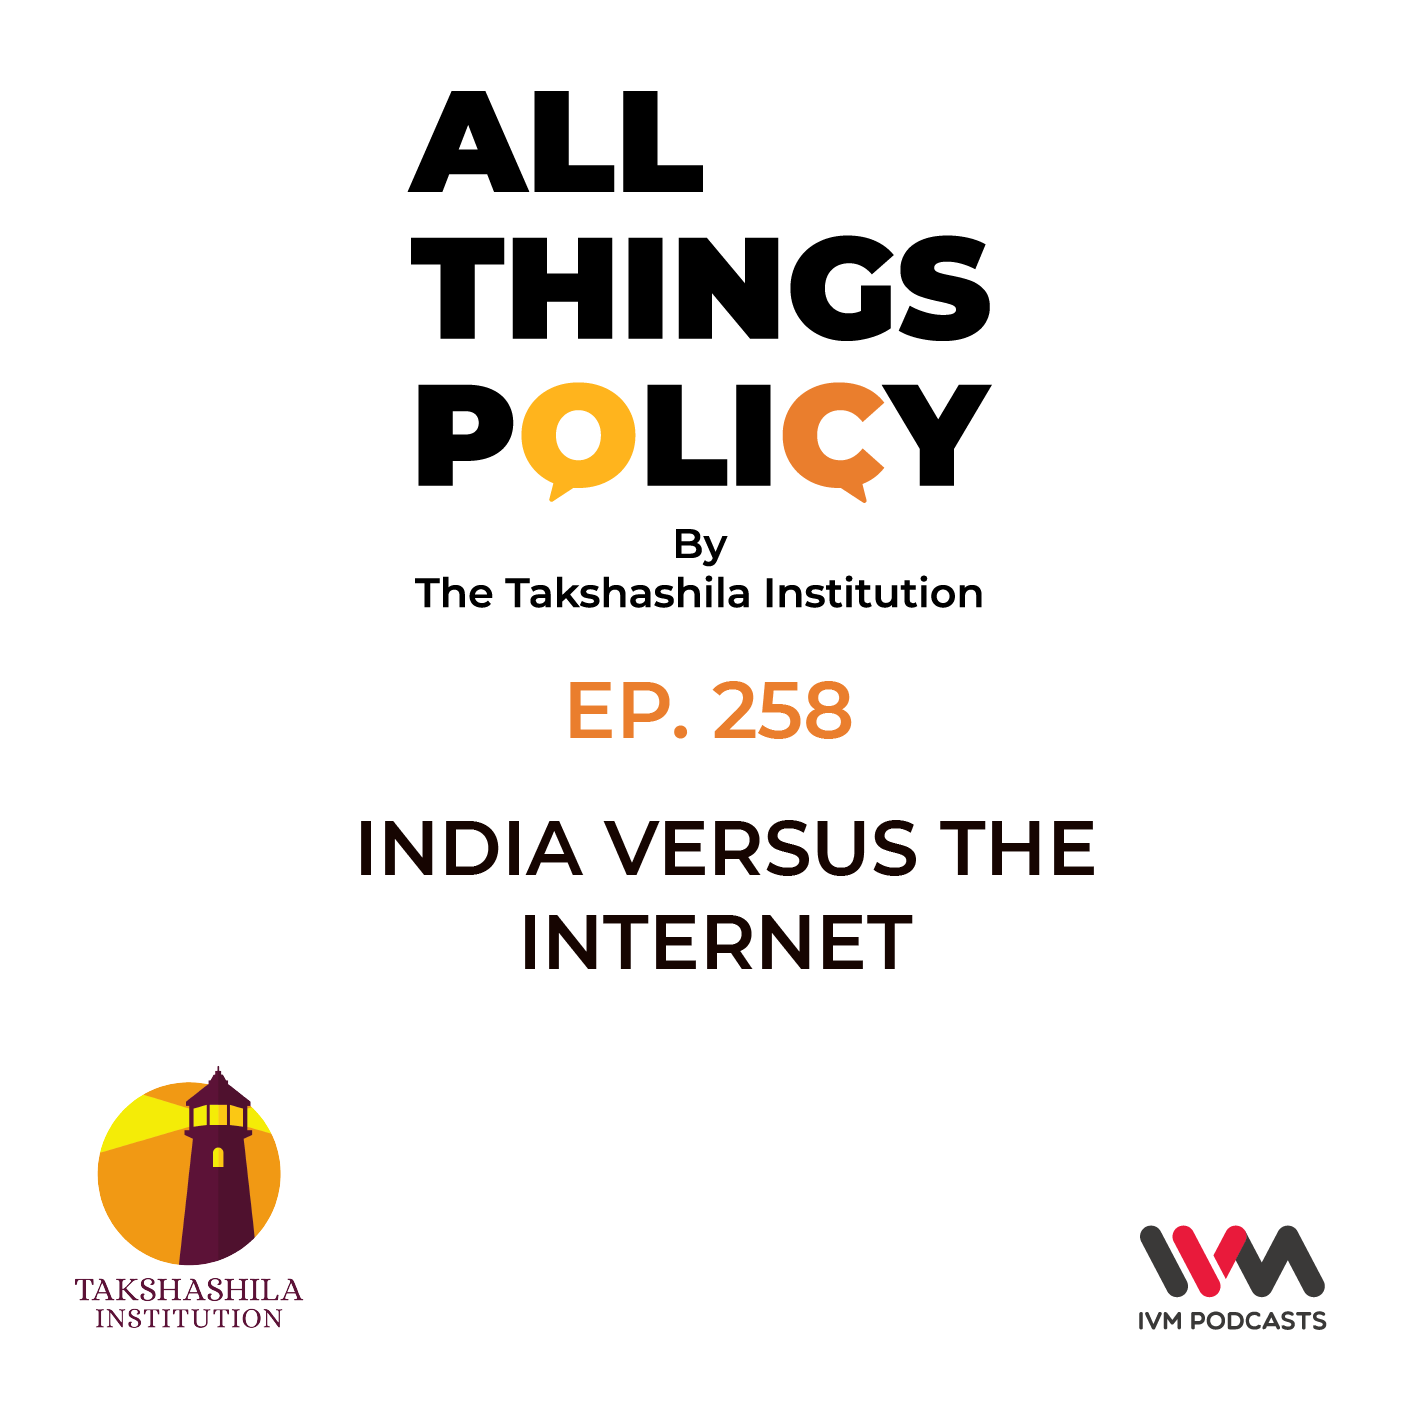 Ep. 258: India versus the Internet